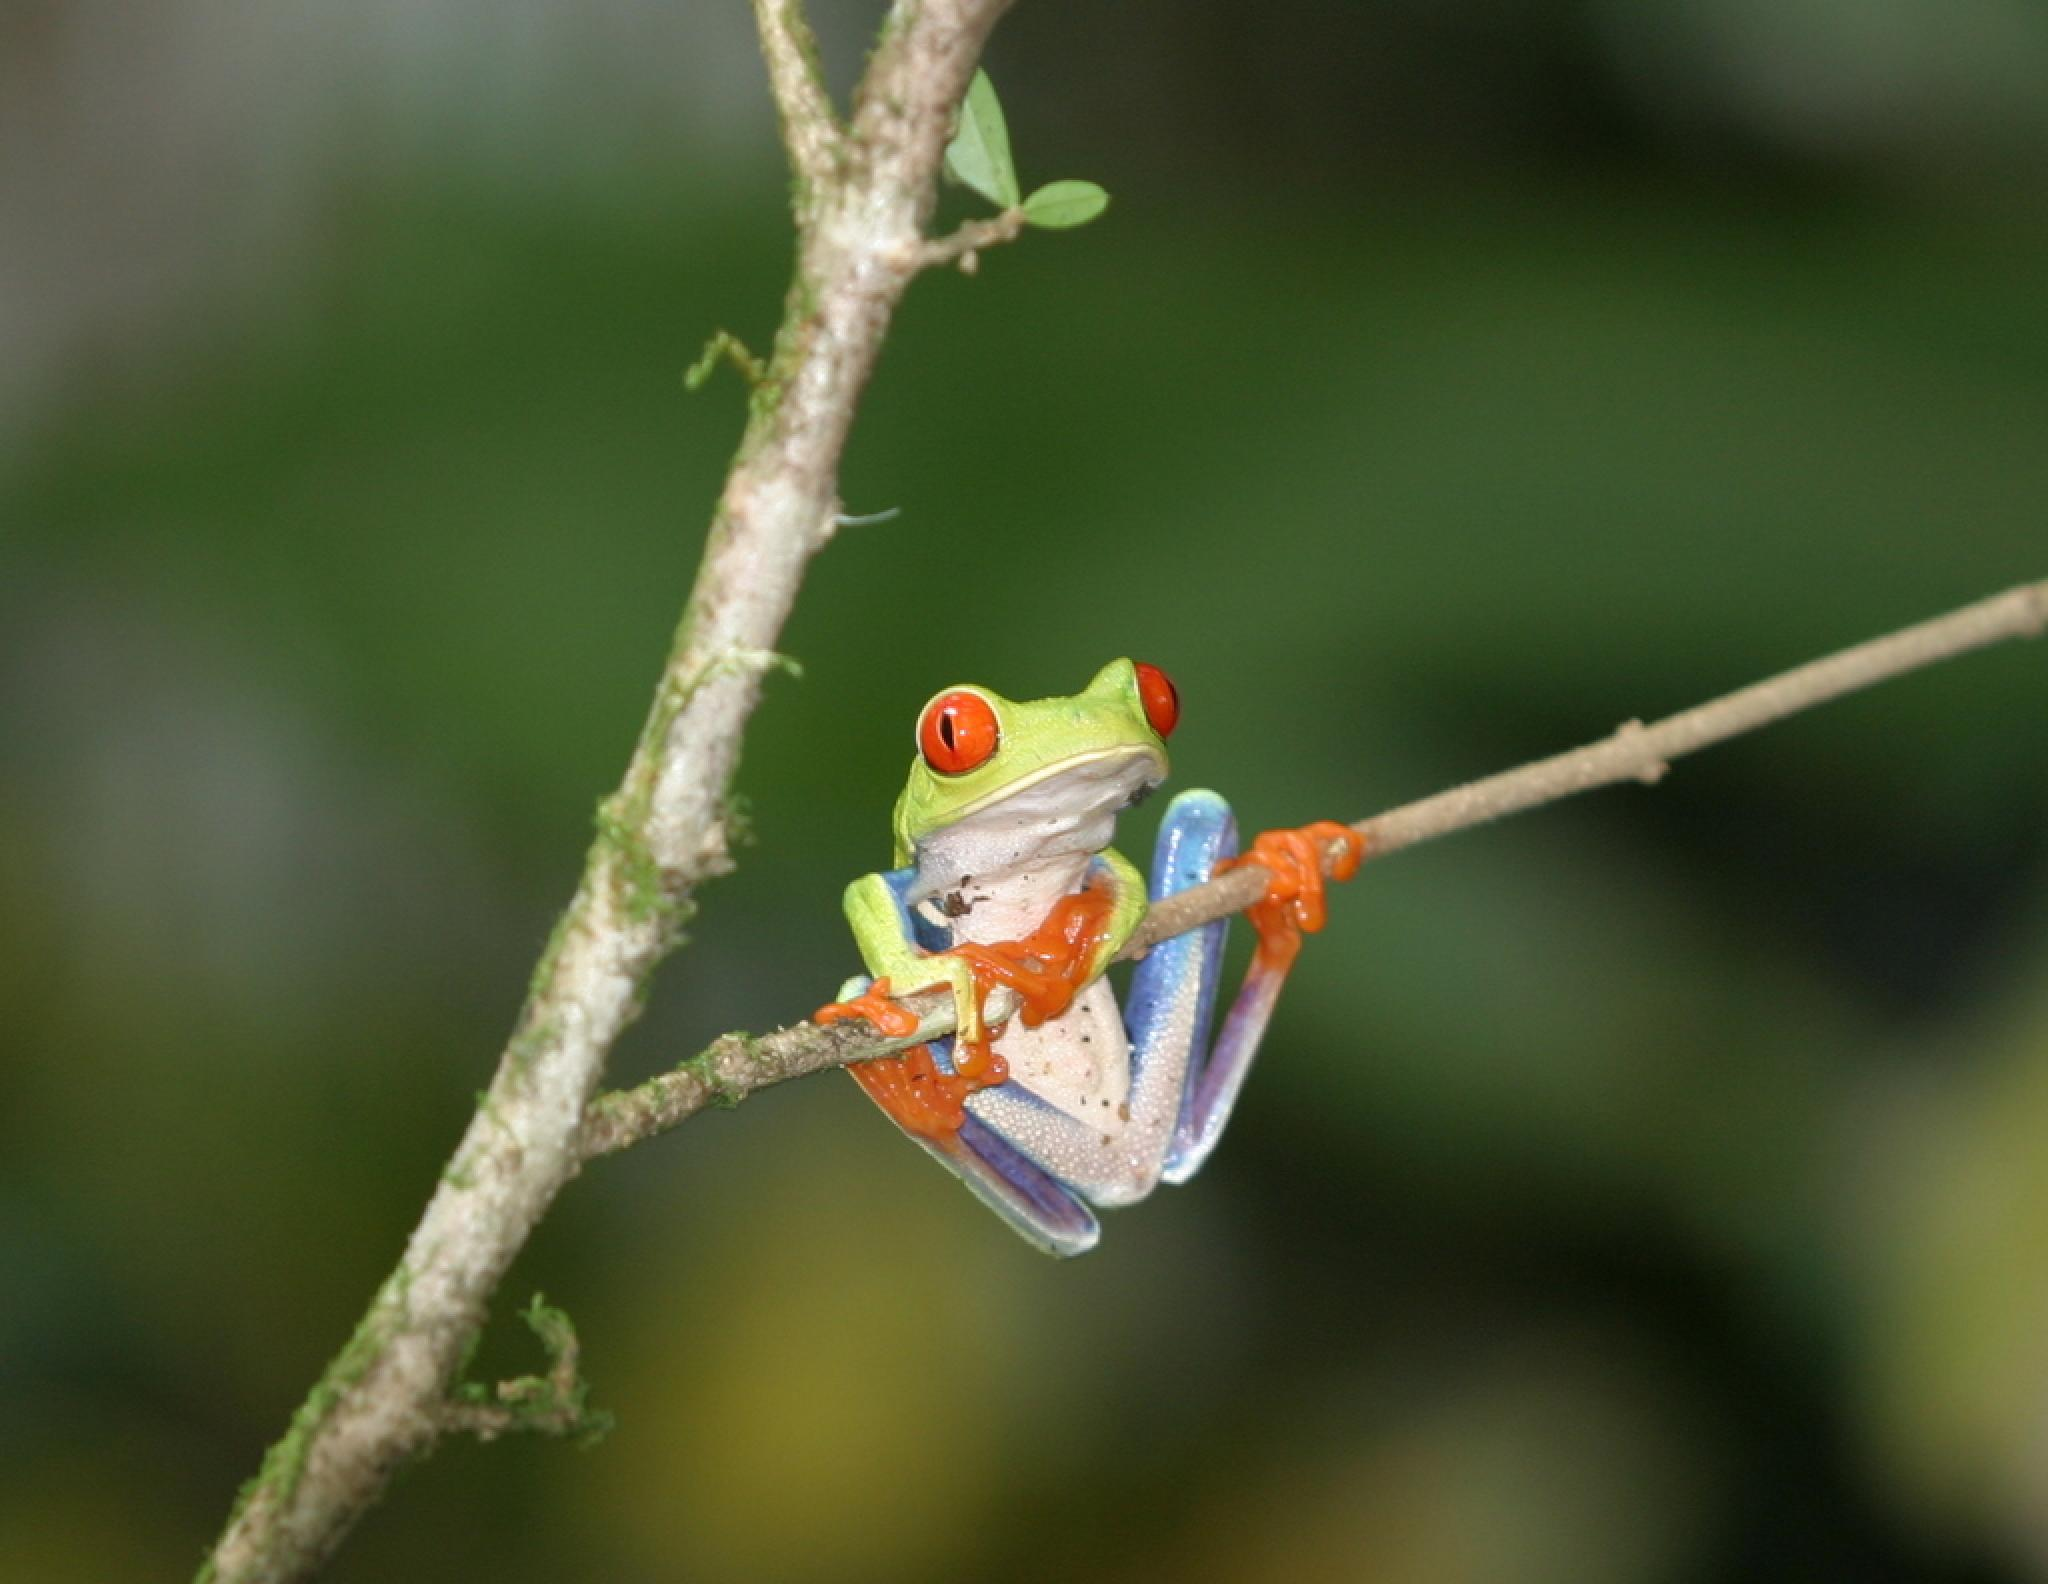 A day with Nature: Suspension Bridges, Butterfly Garden, Amphibian & Snake Exhibits, Lunch